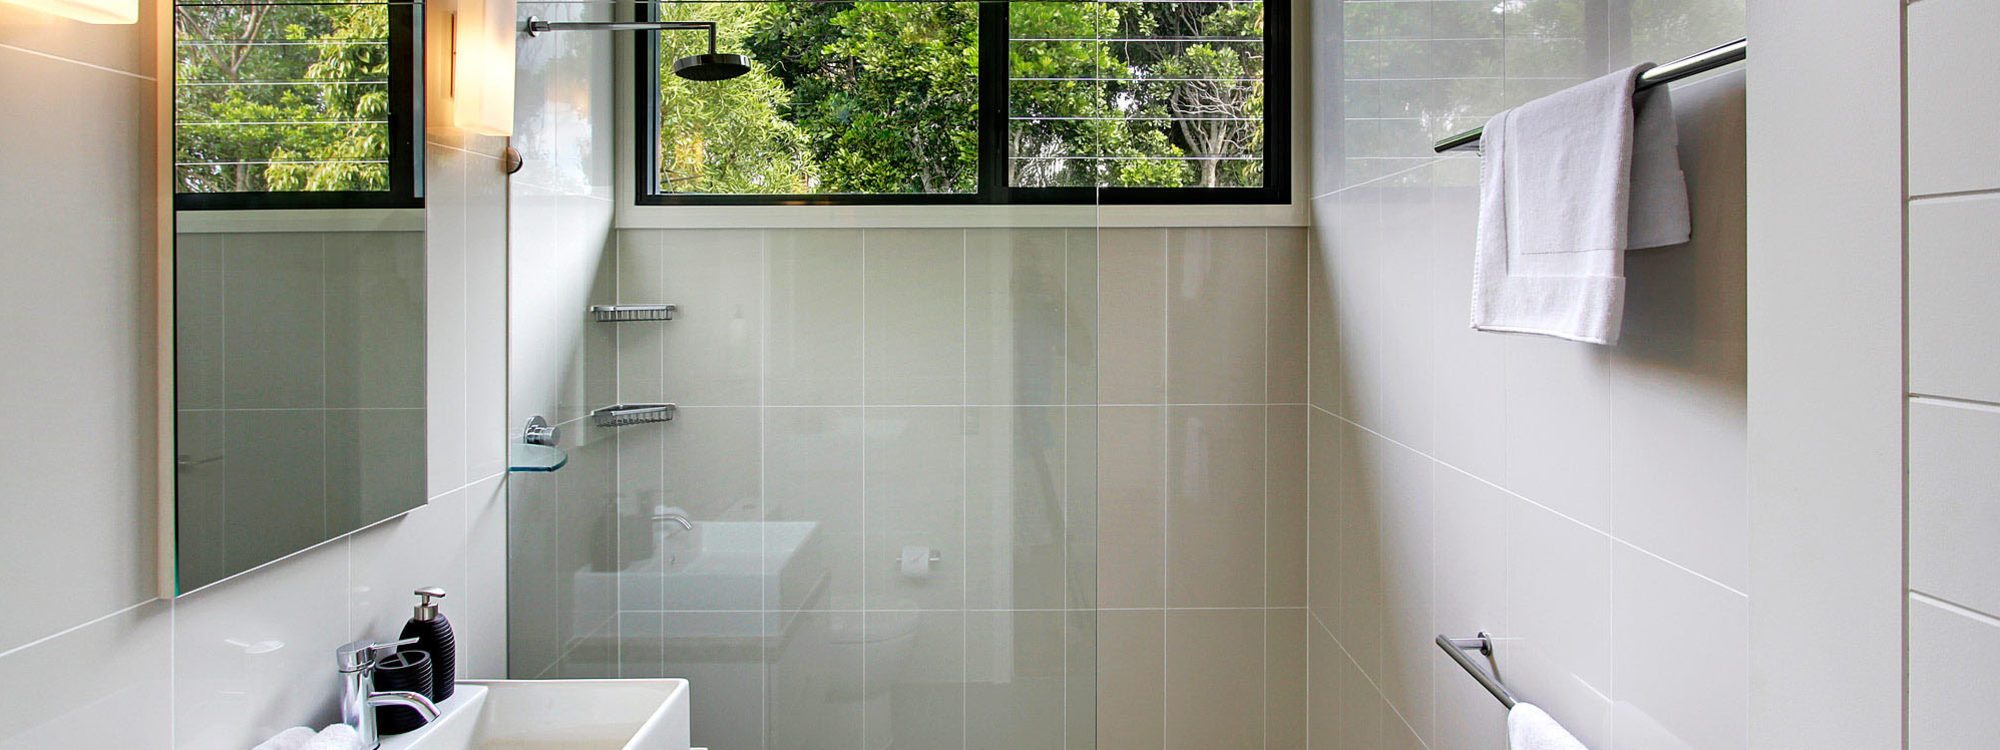 Ocean View at Kiah - Byron Bay - Bathroom Shared